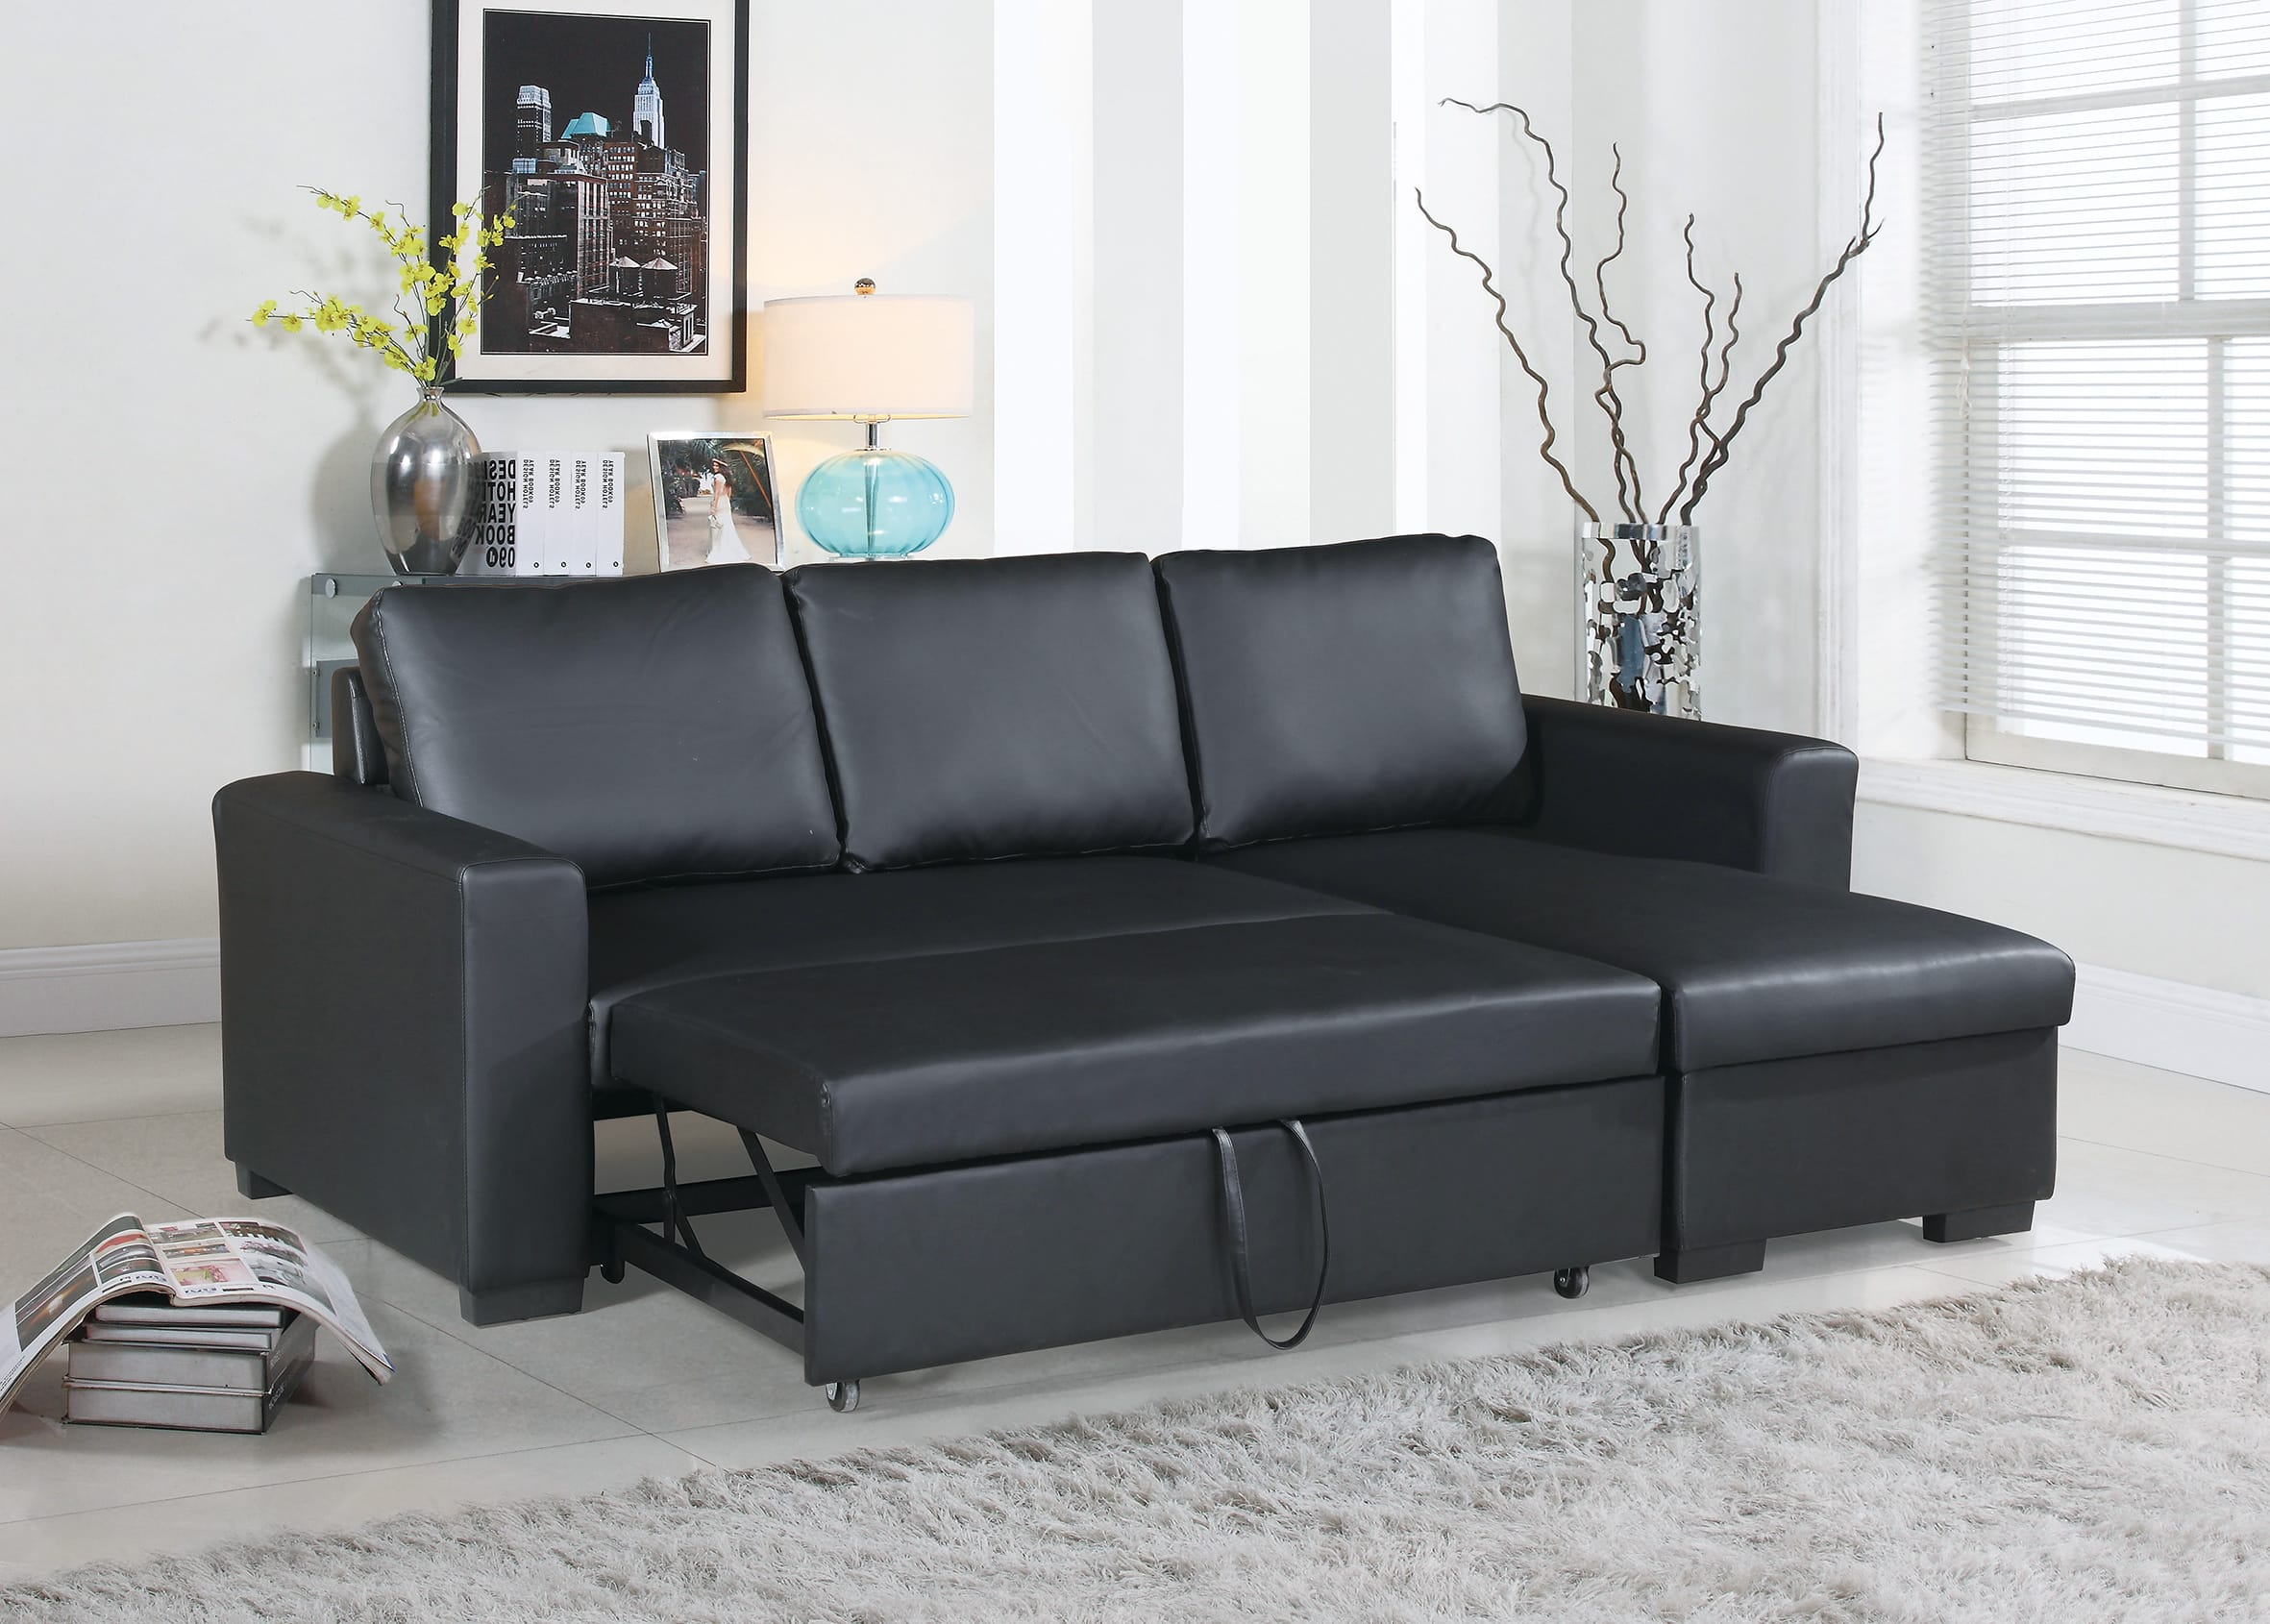 Picture of: F6890 Black Convertible Sectional Sofa By Poundex